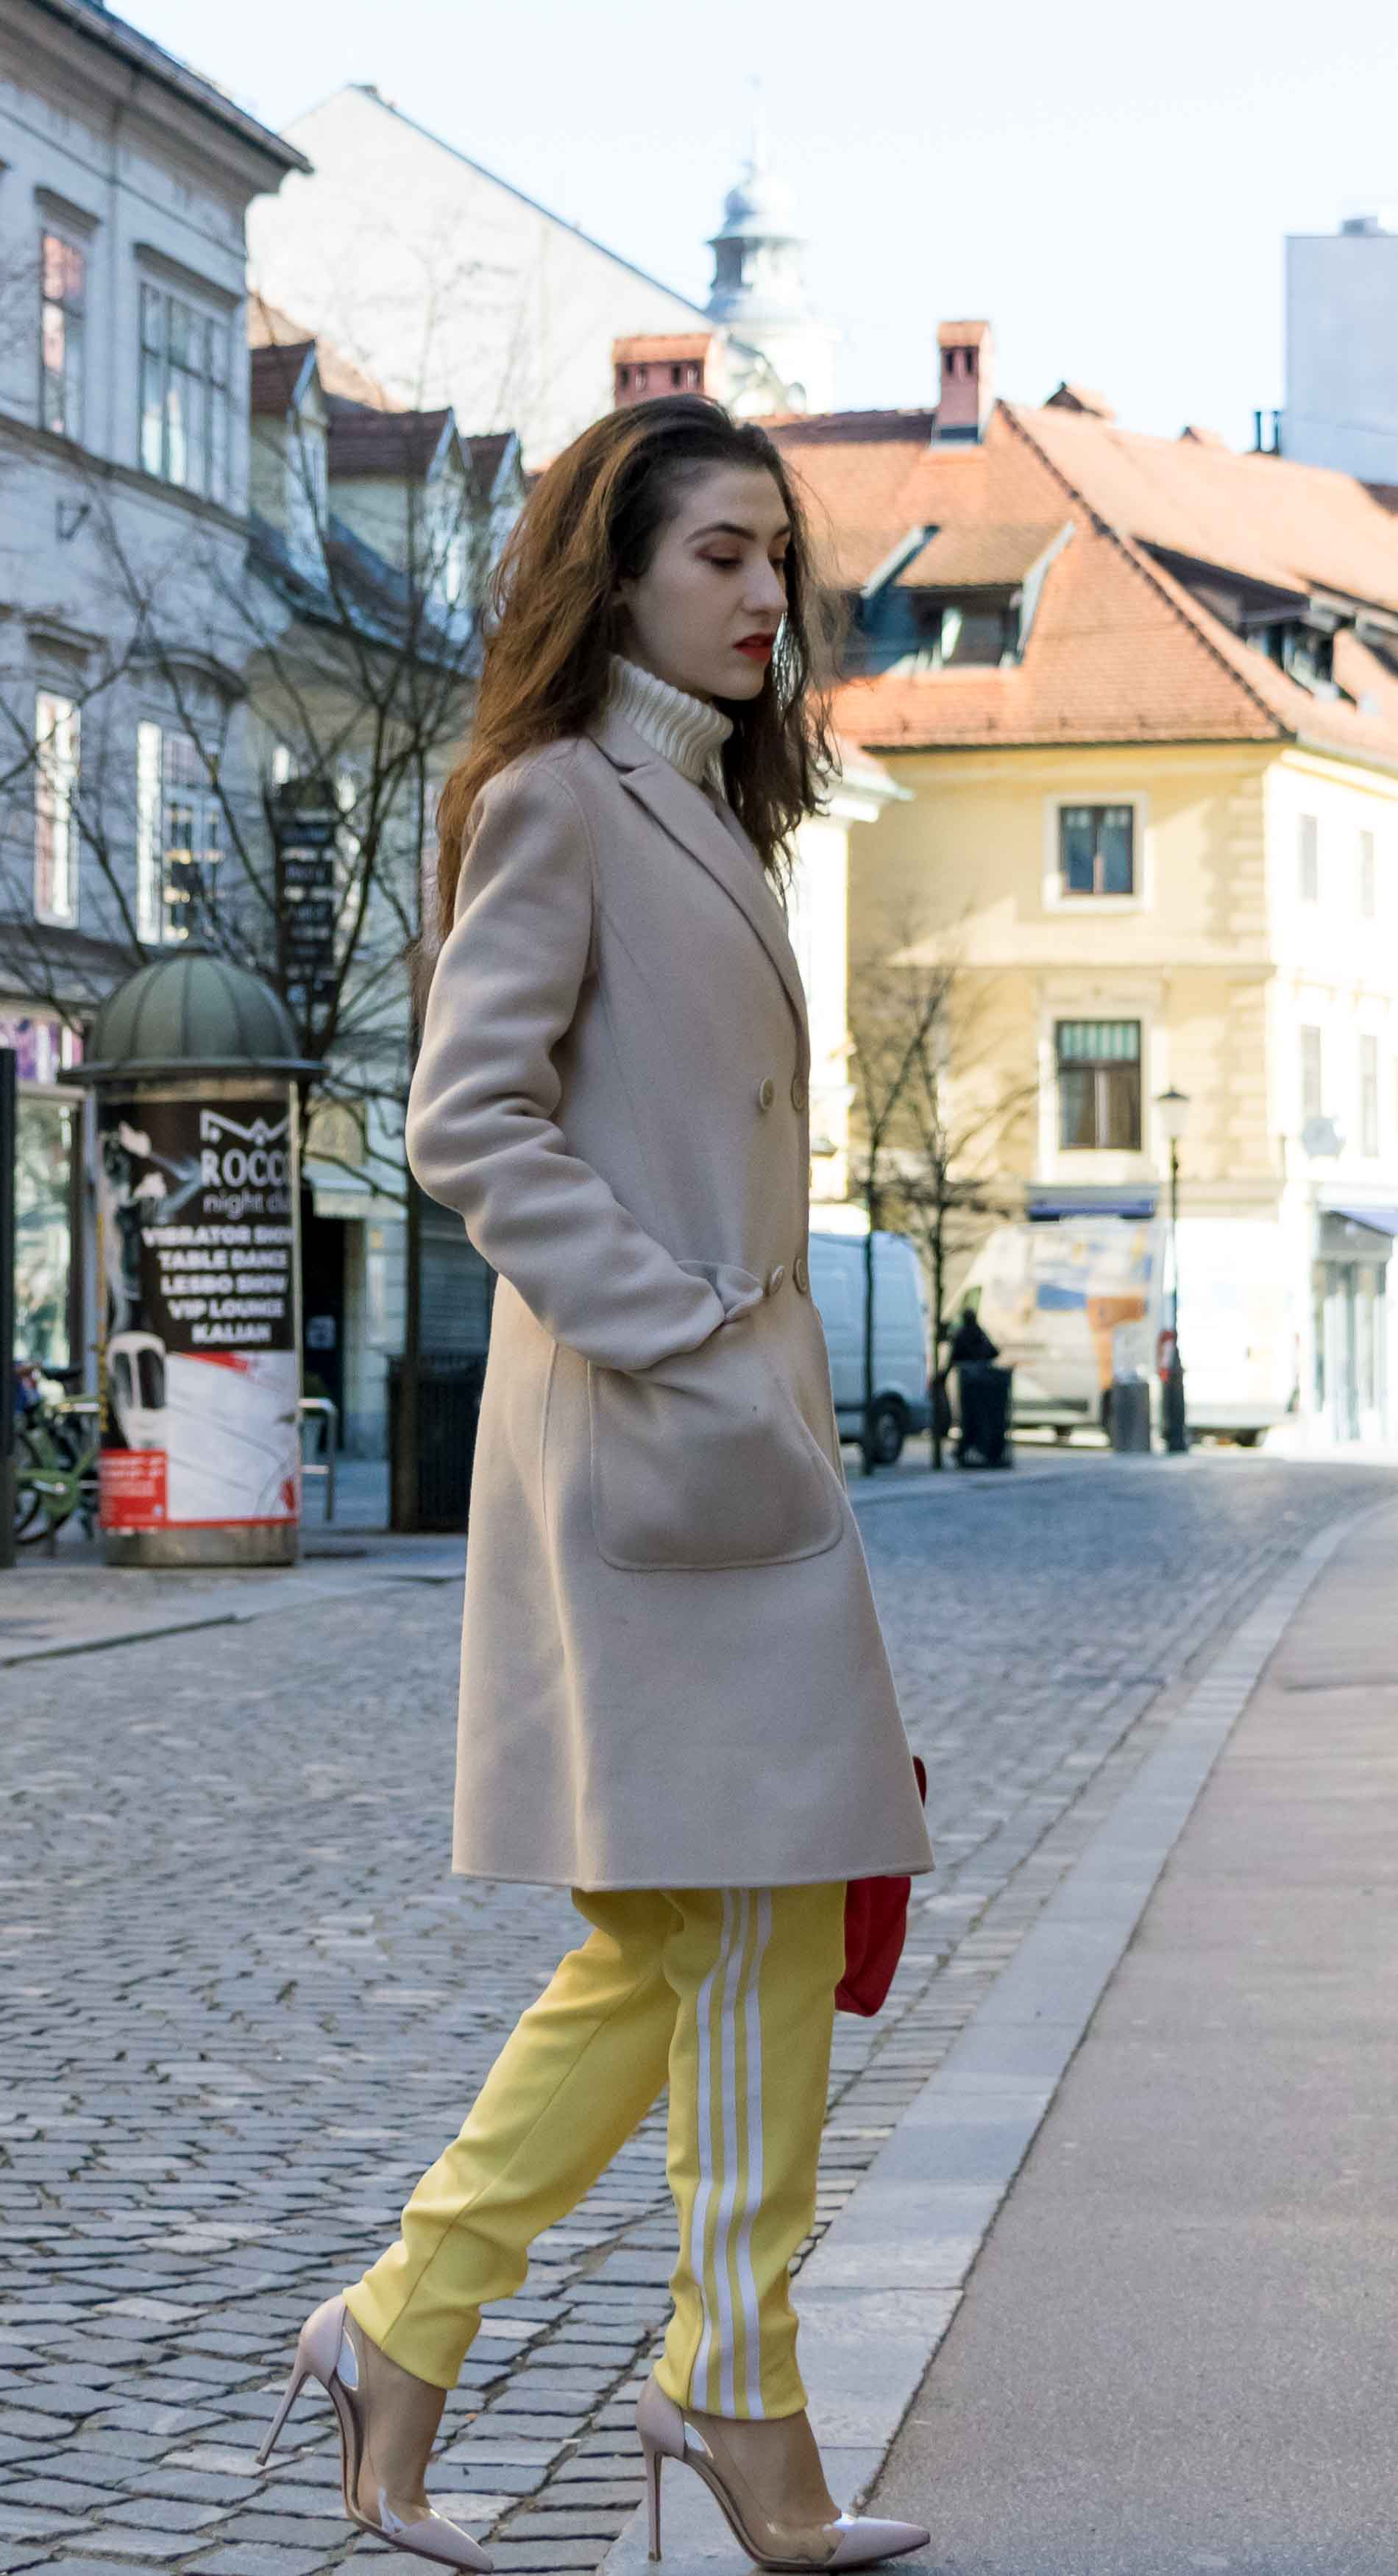 Fashion Blogger Veronika Lipar of Brunette from Wall Street wearing yellow track pants with white stripes from Adidas, white turtleneck knit sweater, off-white pastel double breasted coat from Weekend Max Mara, blush powder transparent plexi pumps shoes from Gianvito Rossi, pink top handle bag from See by Chloe while crossing the street in Ljubljana on a cold spring day